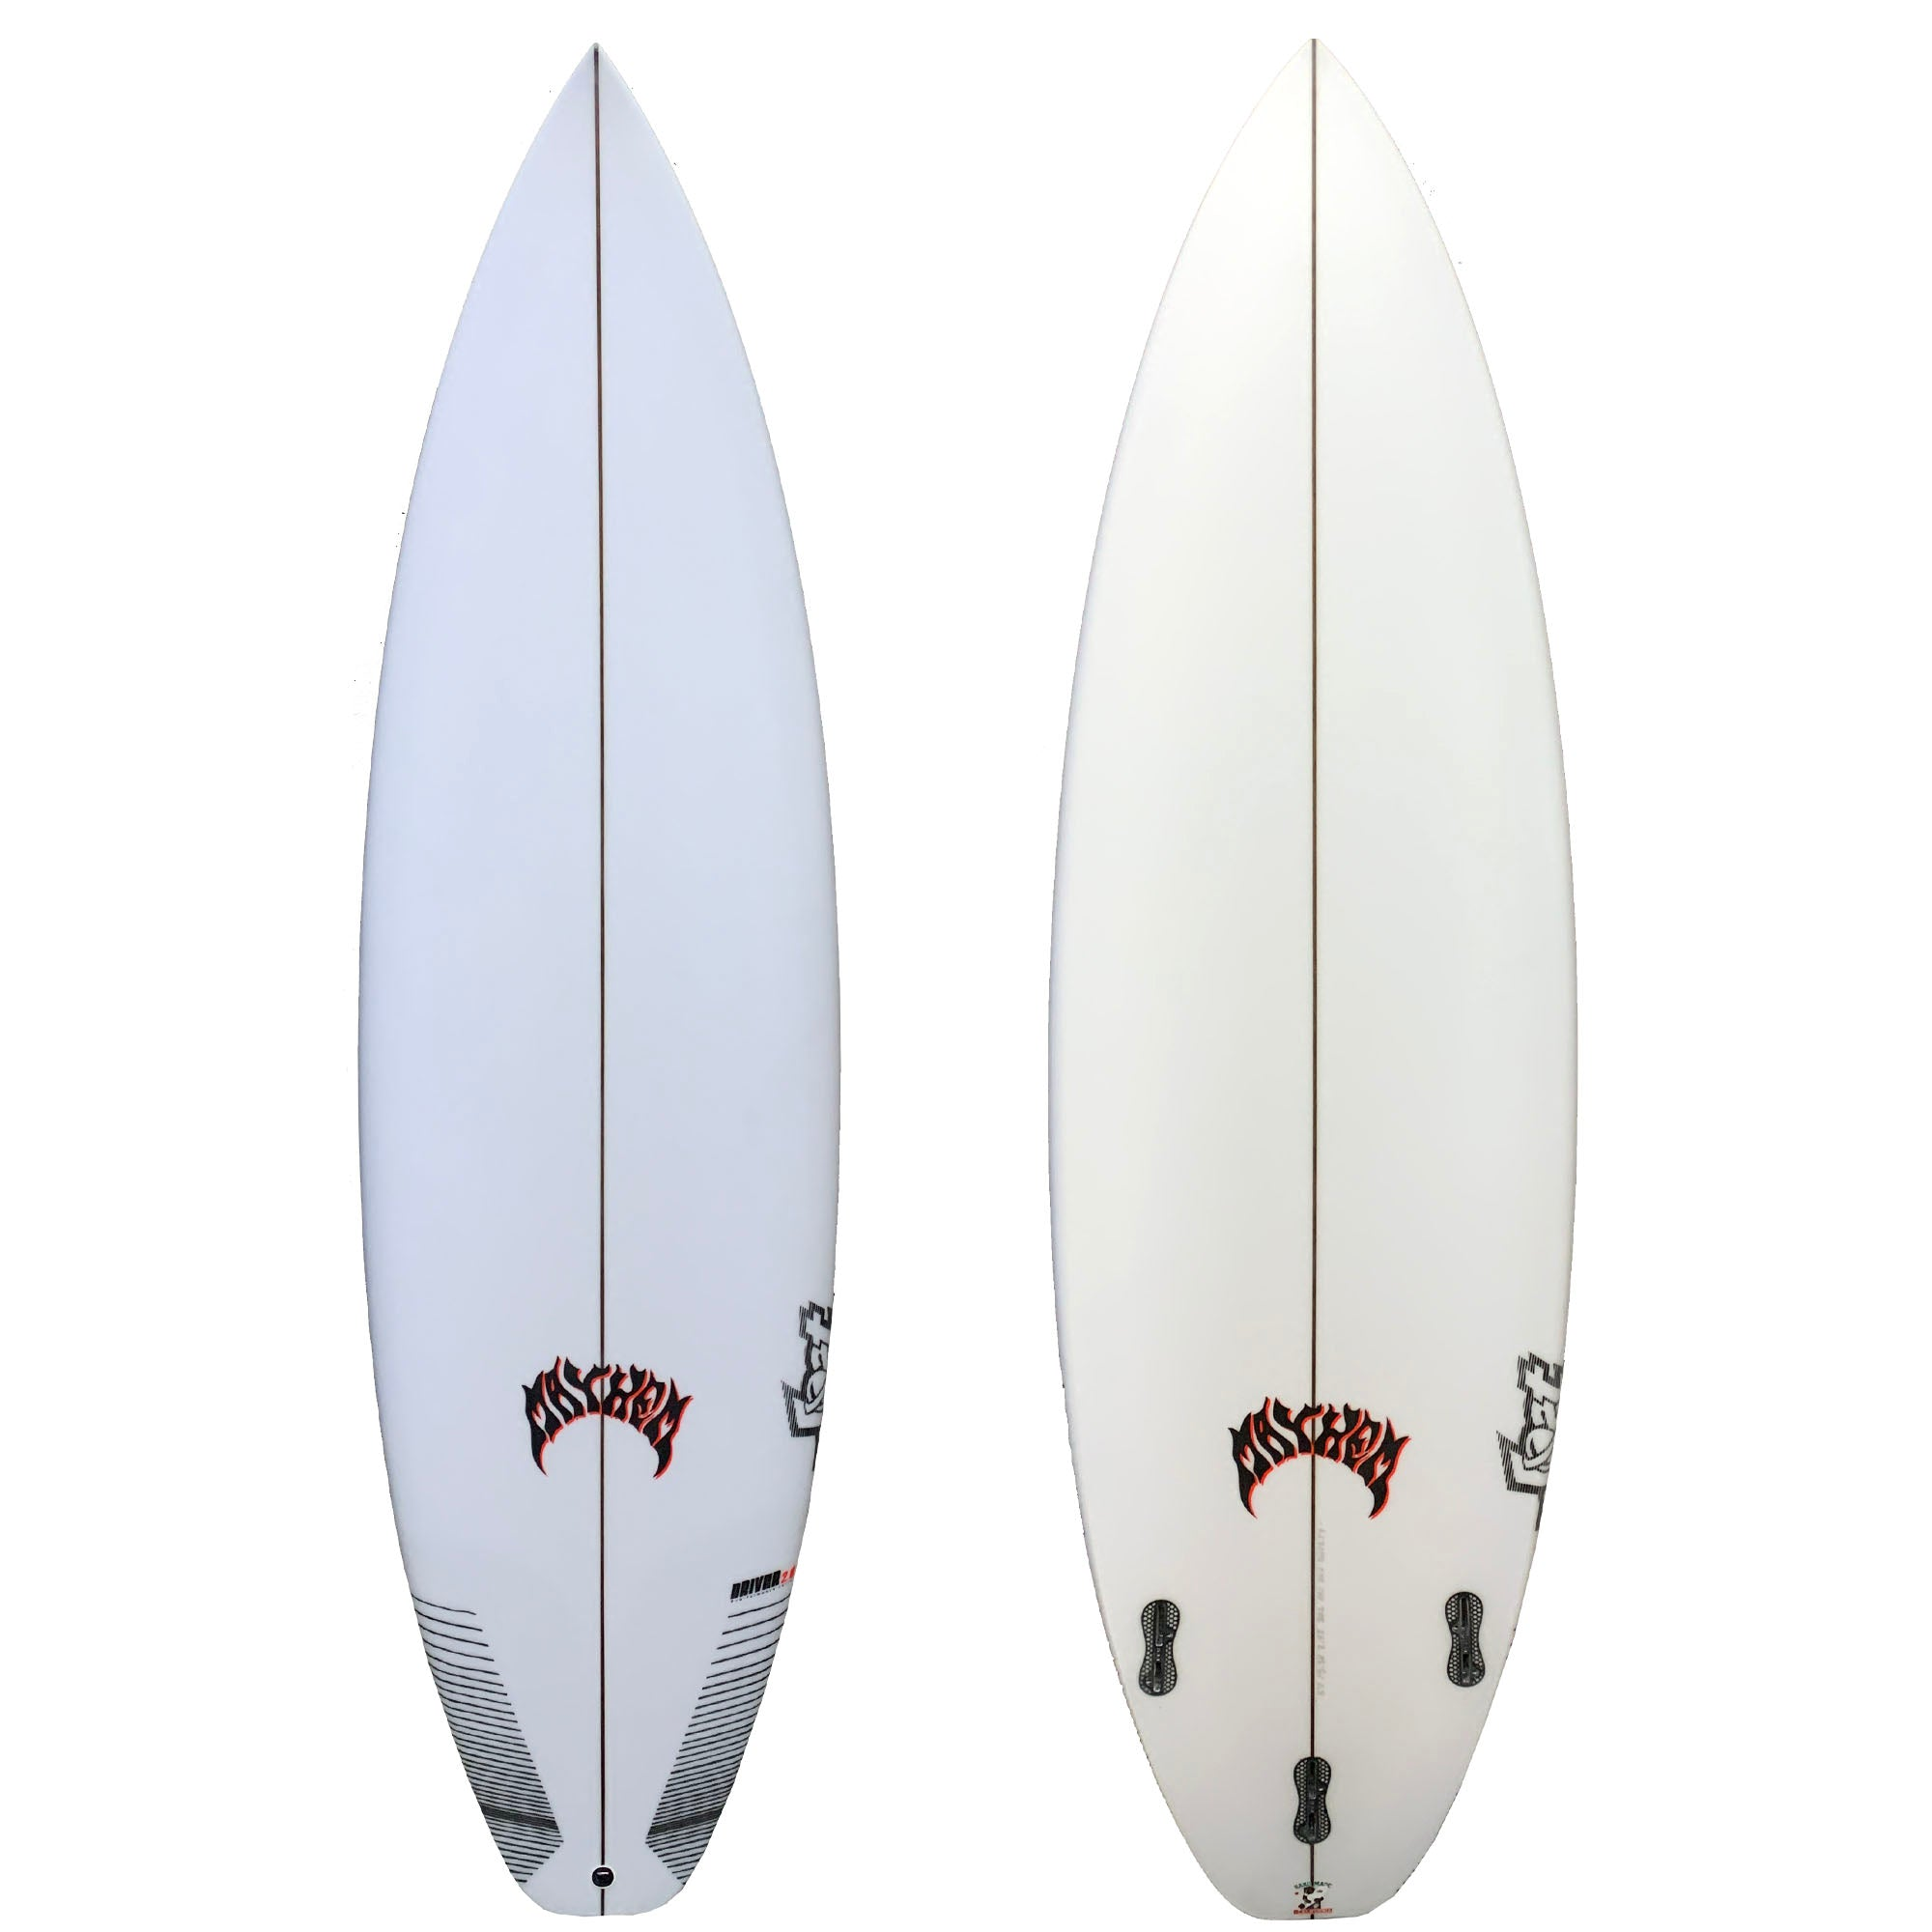 Lost Driver 2.0 Squash Surfboard